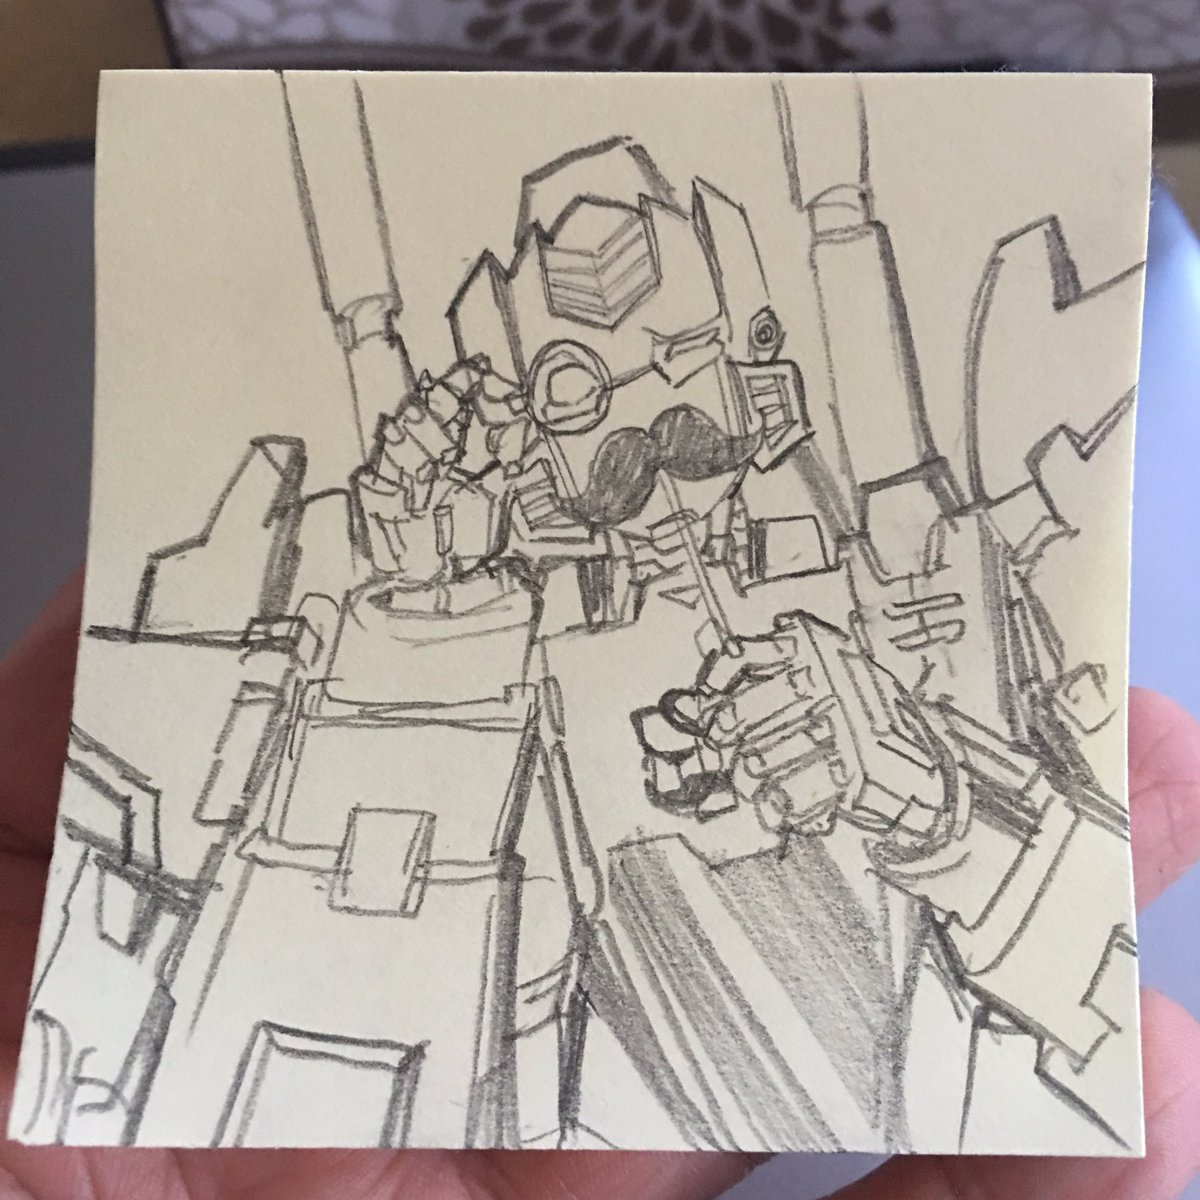 I drew this for good friend @Sierenthe  It&#39;s #brainstorm being all dapper! #transformers  #postit #sketch <br>http://pic.twitter.com/eP3Jwgz42o